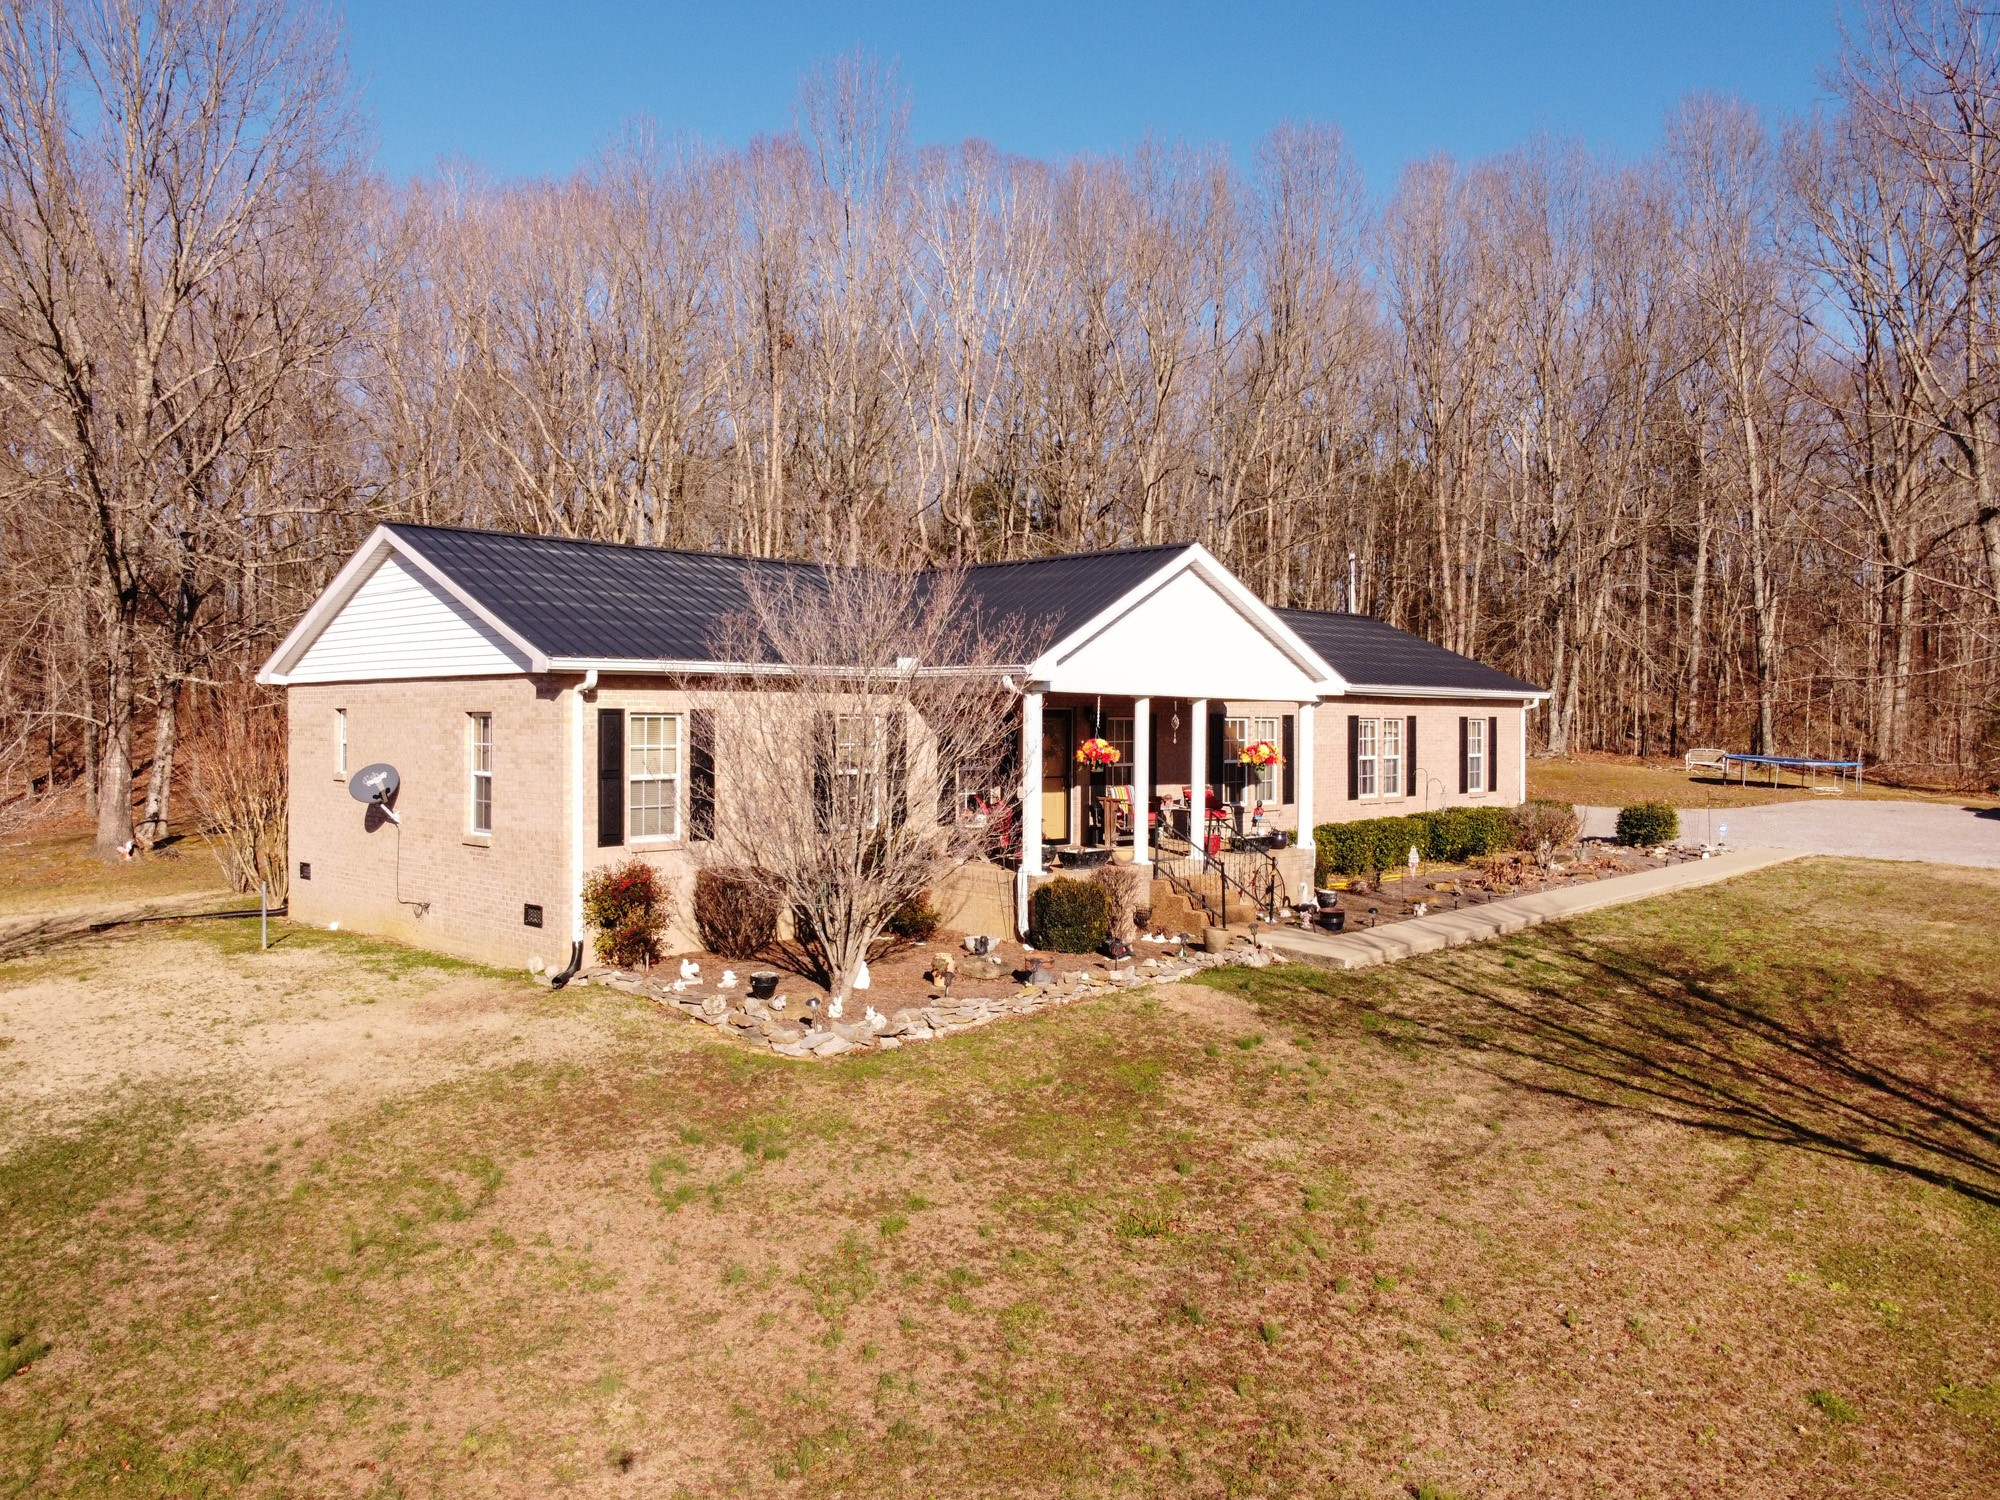 Don't miss the opportunity that you have been dreaming about! This 12.3 acres is located in College Grove just minutes from Spring Hill and Thompson's Station. It has the perfect mix of pasture and woods. Plenty of space for you to do the things you have always dreamed about. Bonfires, camping, hunting, and enjoying the quiet life. They aren't making anymore land so don't make the mistake of letting this one slip by.